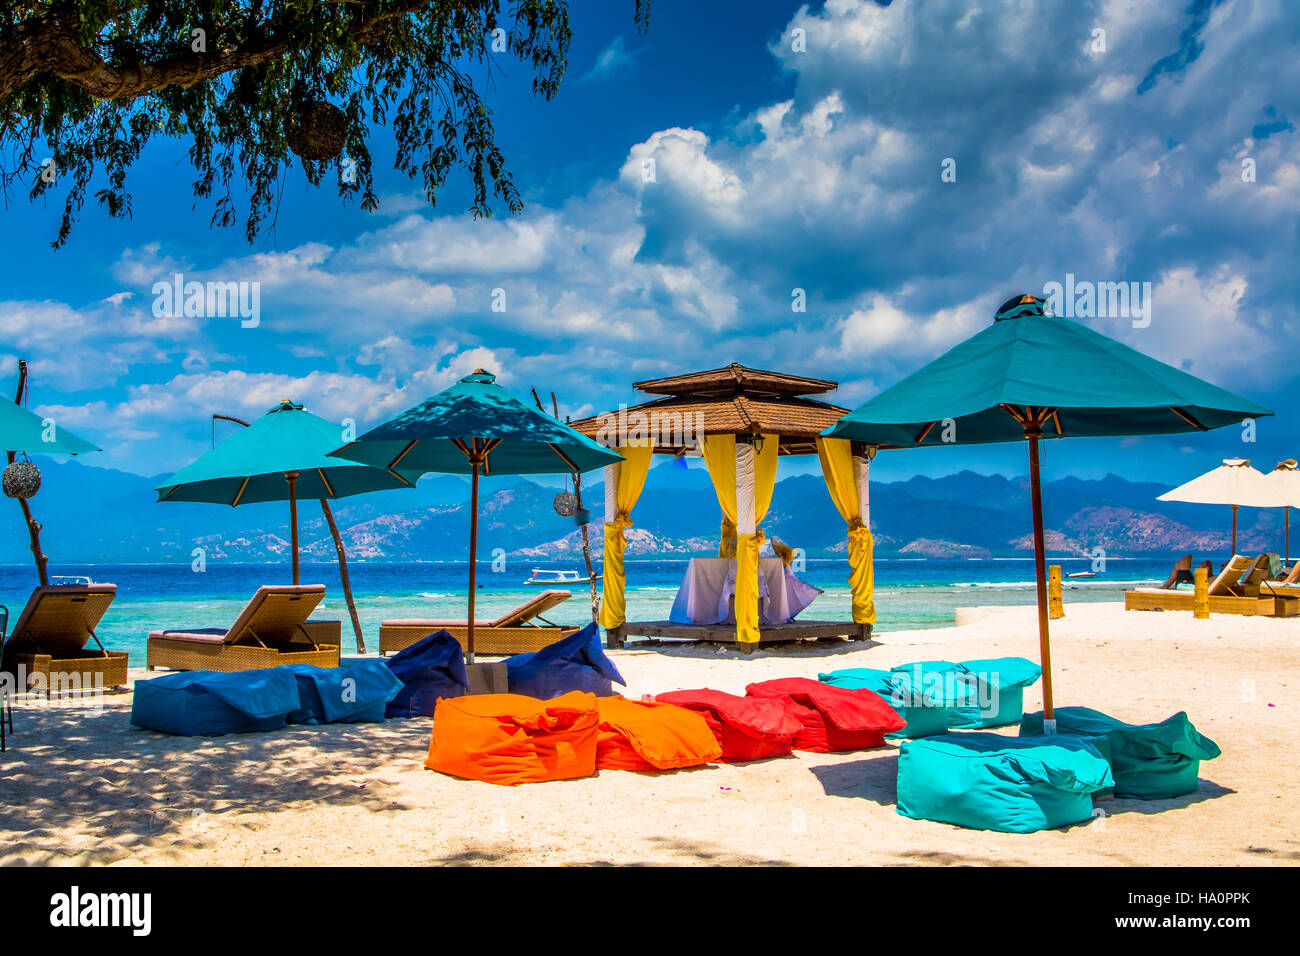 Parasols By Lounge Chairs And Bean Bags On Sand At Beach Against Sky - Stock Image